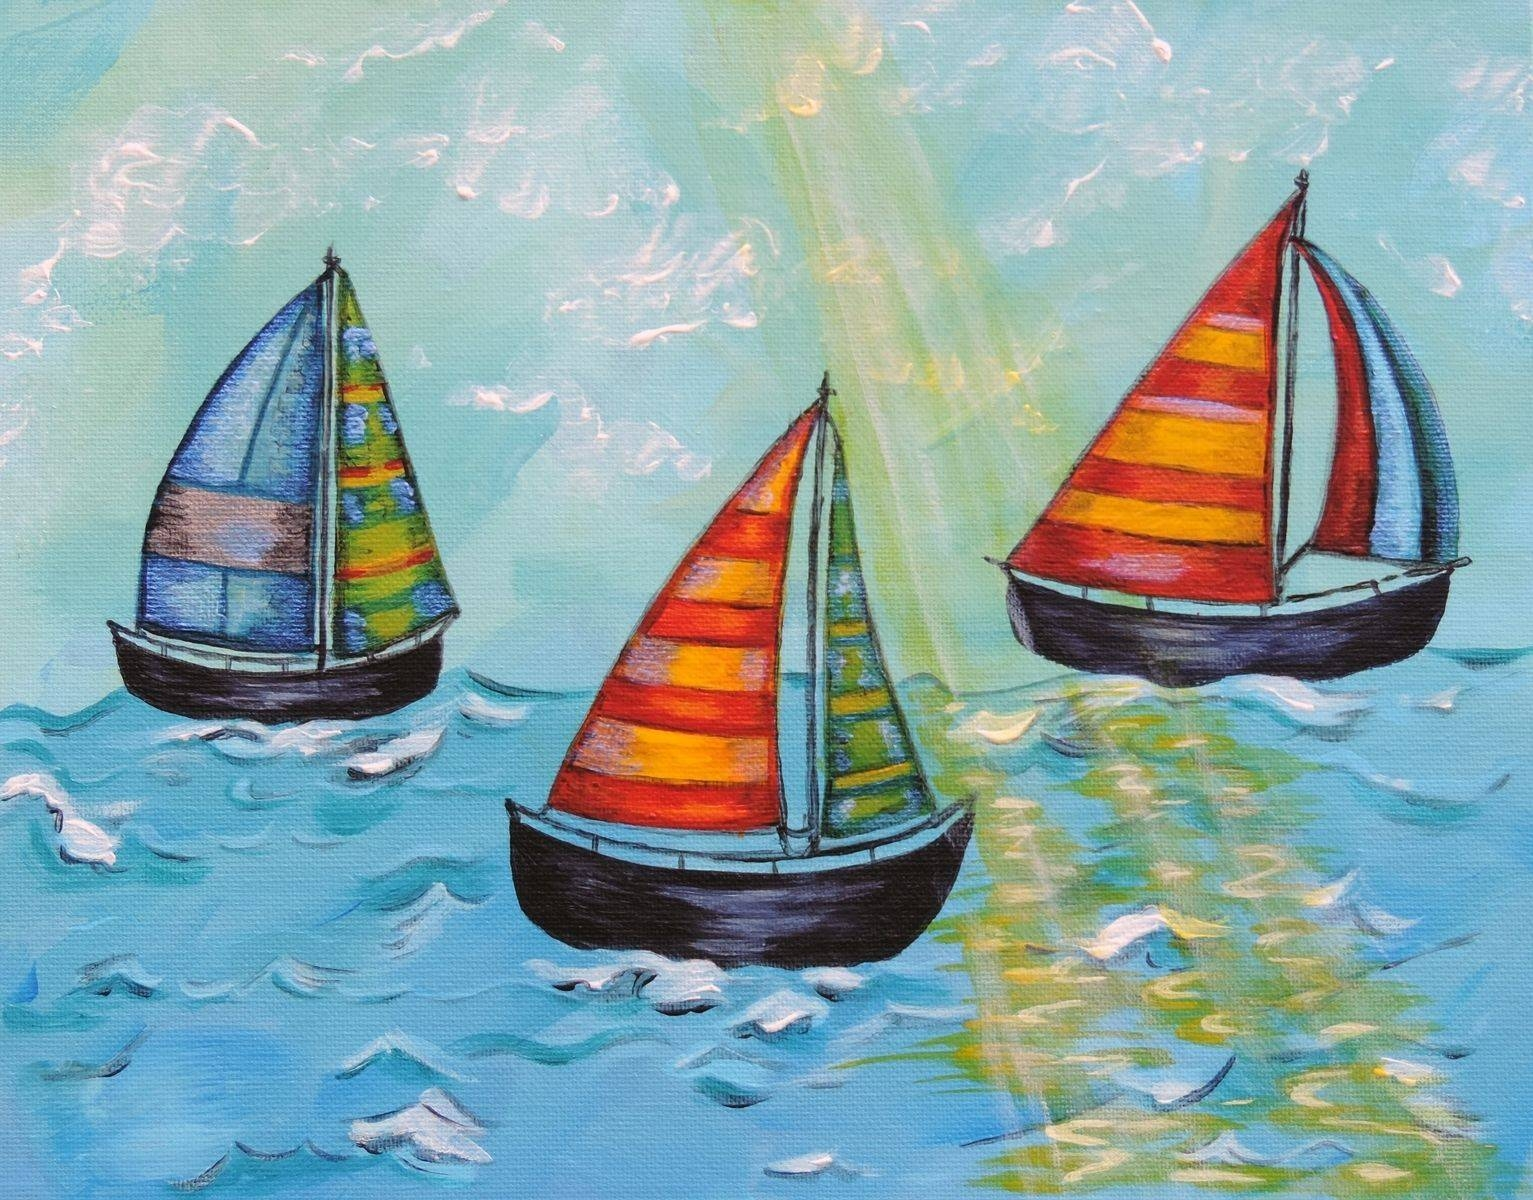 Hand Crafted Sail Boats, Child Or Nursery Art / Kids Wall Art In Most Up To Date Boat Wall Art (View 16 of 20)